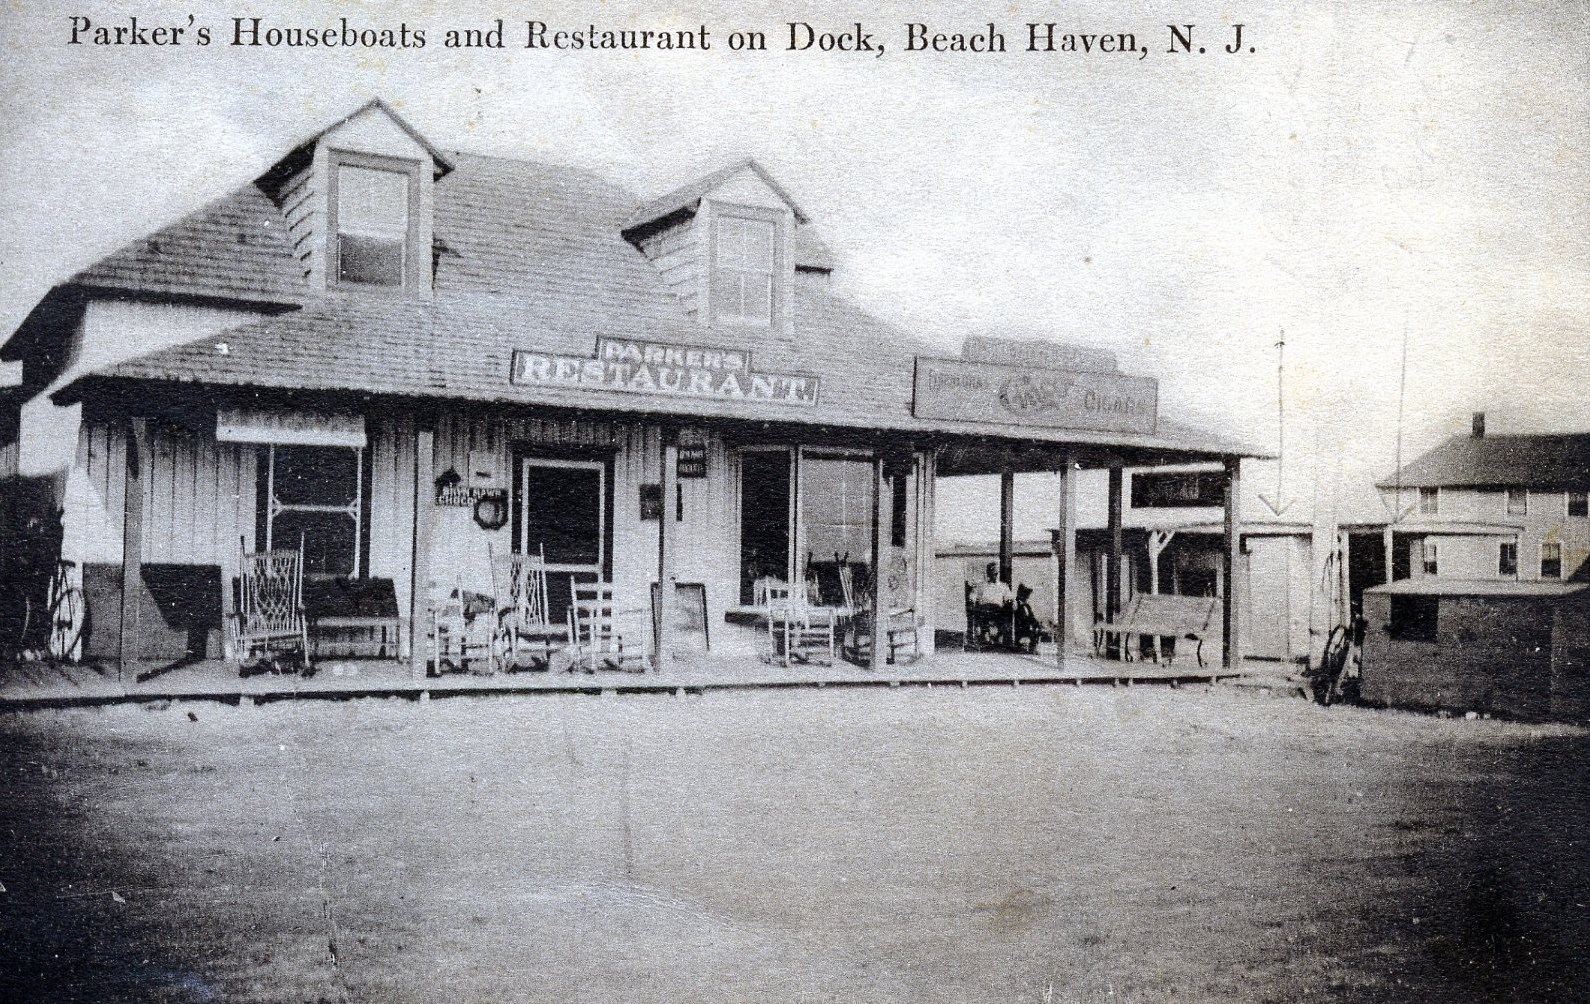 Parker's Garage is a throwback to turn-of-the-century Beach Haven and Ellis Parker's restaurant/engine repair shop on the bay. Photo courtesy of New Jersey Maritime Museum.